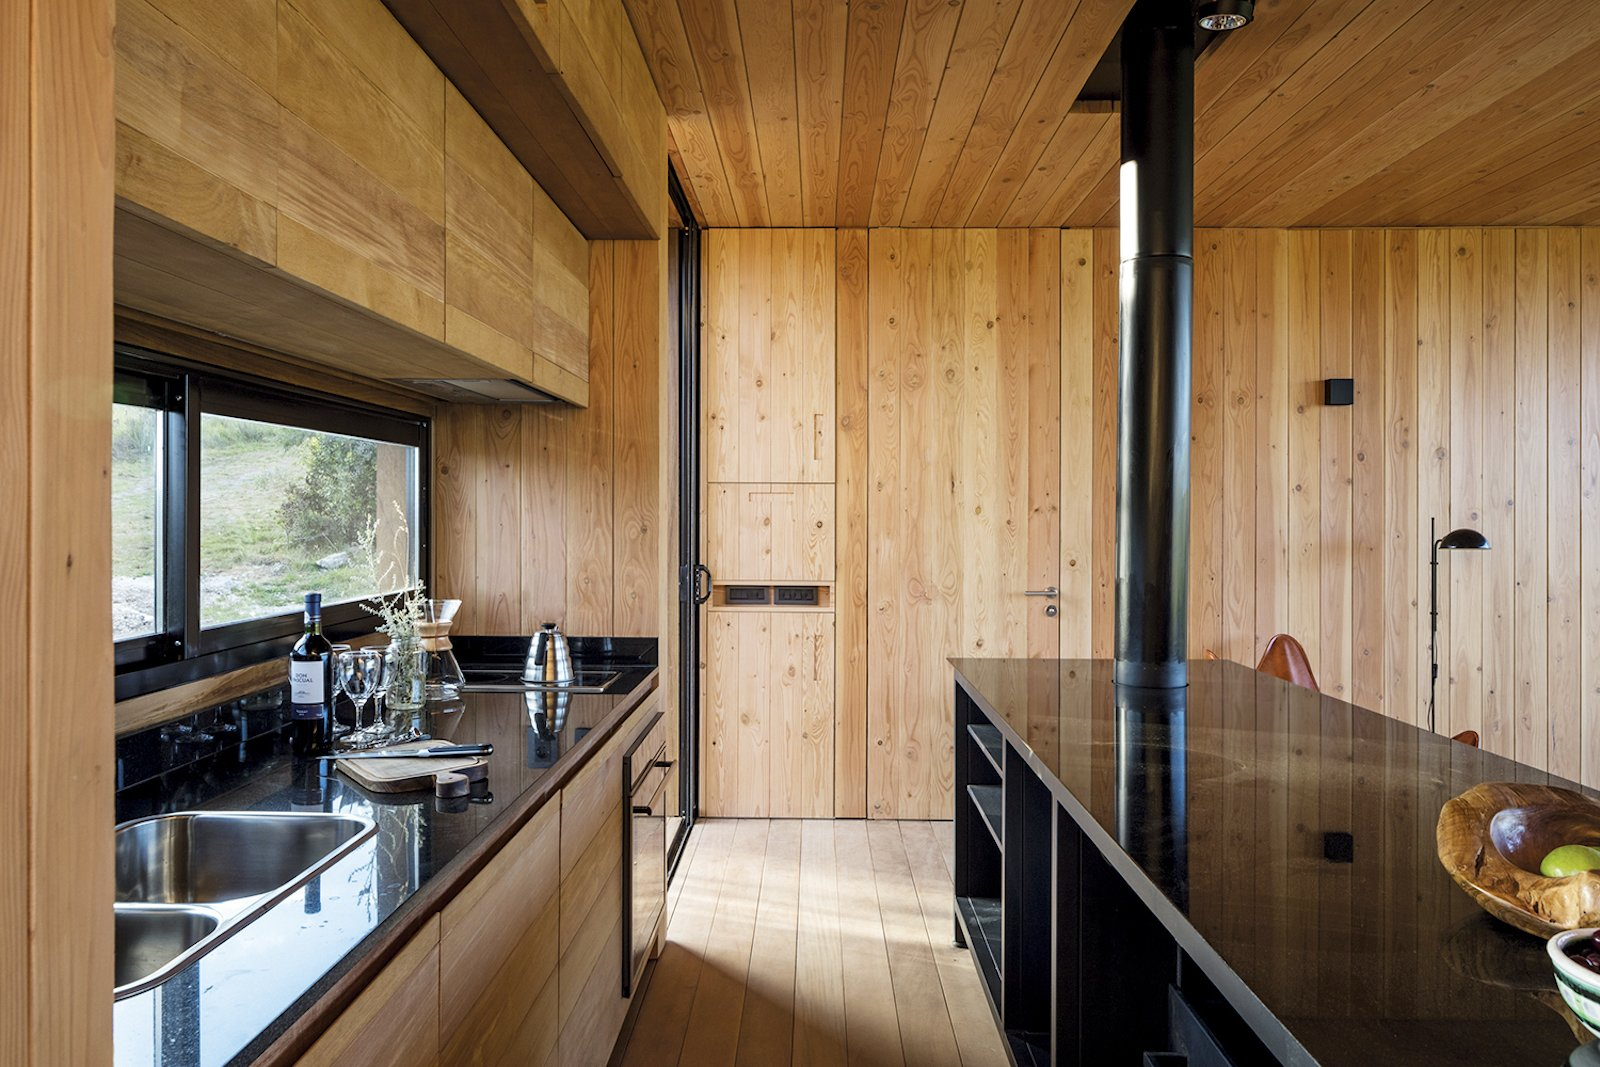 Kitchen and Wood Cabinet  Photo 6 of 16 in A Remote Prefab in Uruguay Is Completely Self-Sufficient